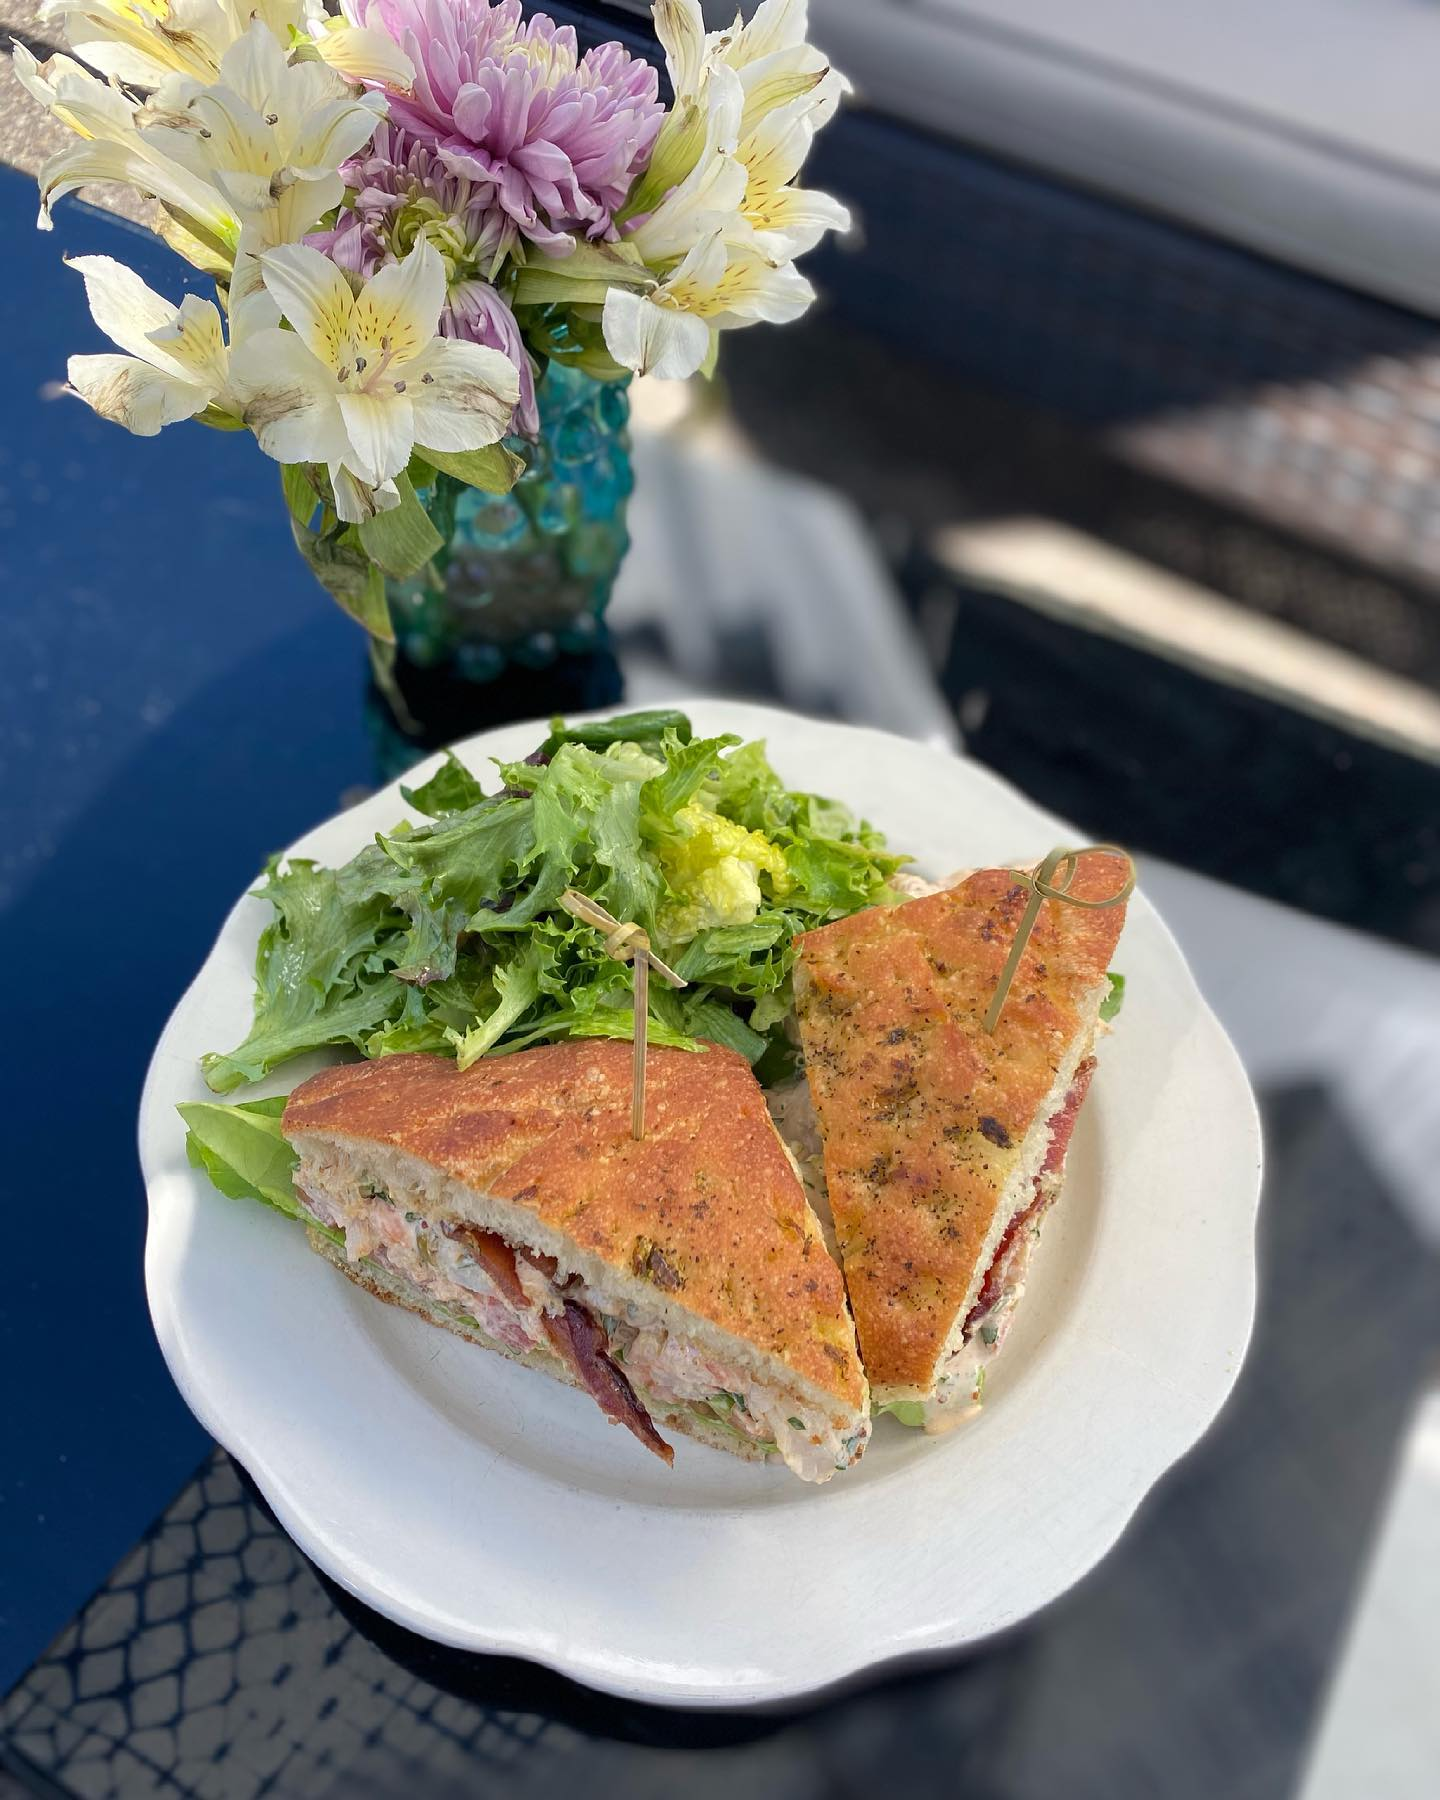 At Heather's: Shrimp Salad Sandwich with Fischer Farms Bacon, Lettuce & Tomato on Focaccia